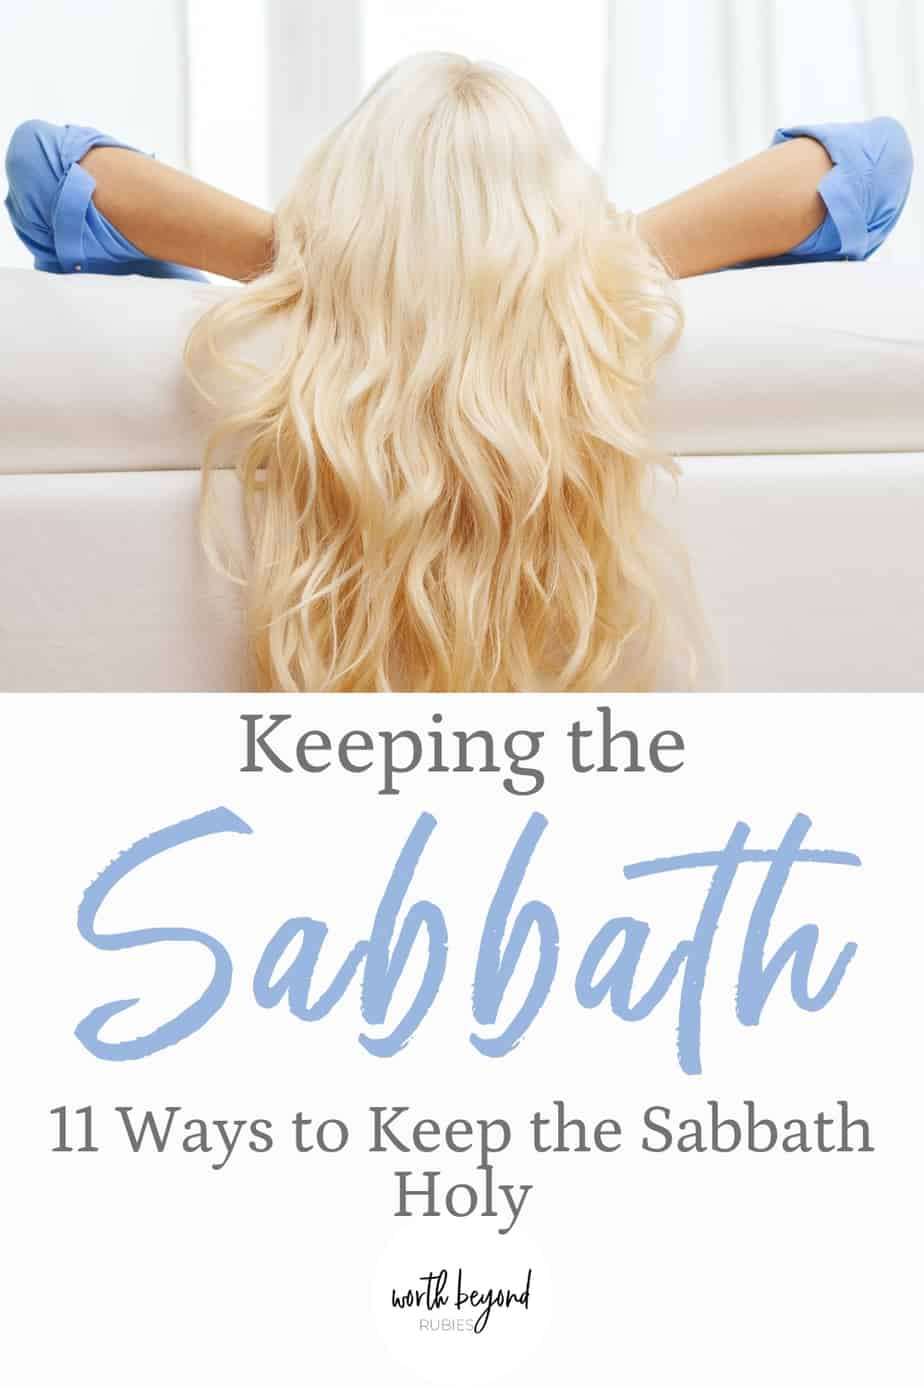 A blonde woman resting against the back of a couch with hands behind her head and text that says Keeping the Sabbath - 11 Ways to Keep the Sabbath Holy